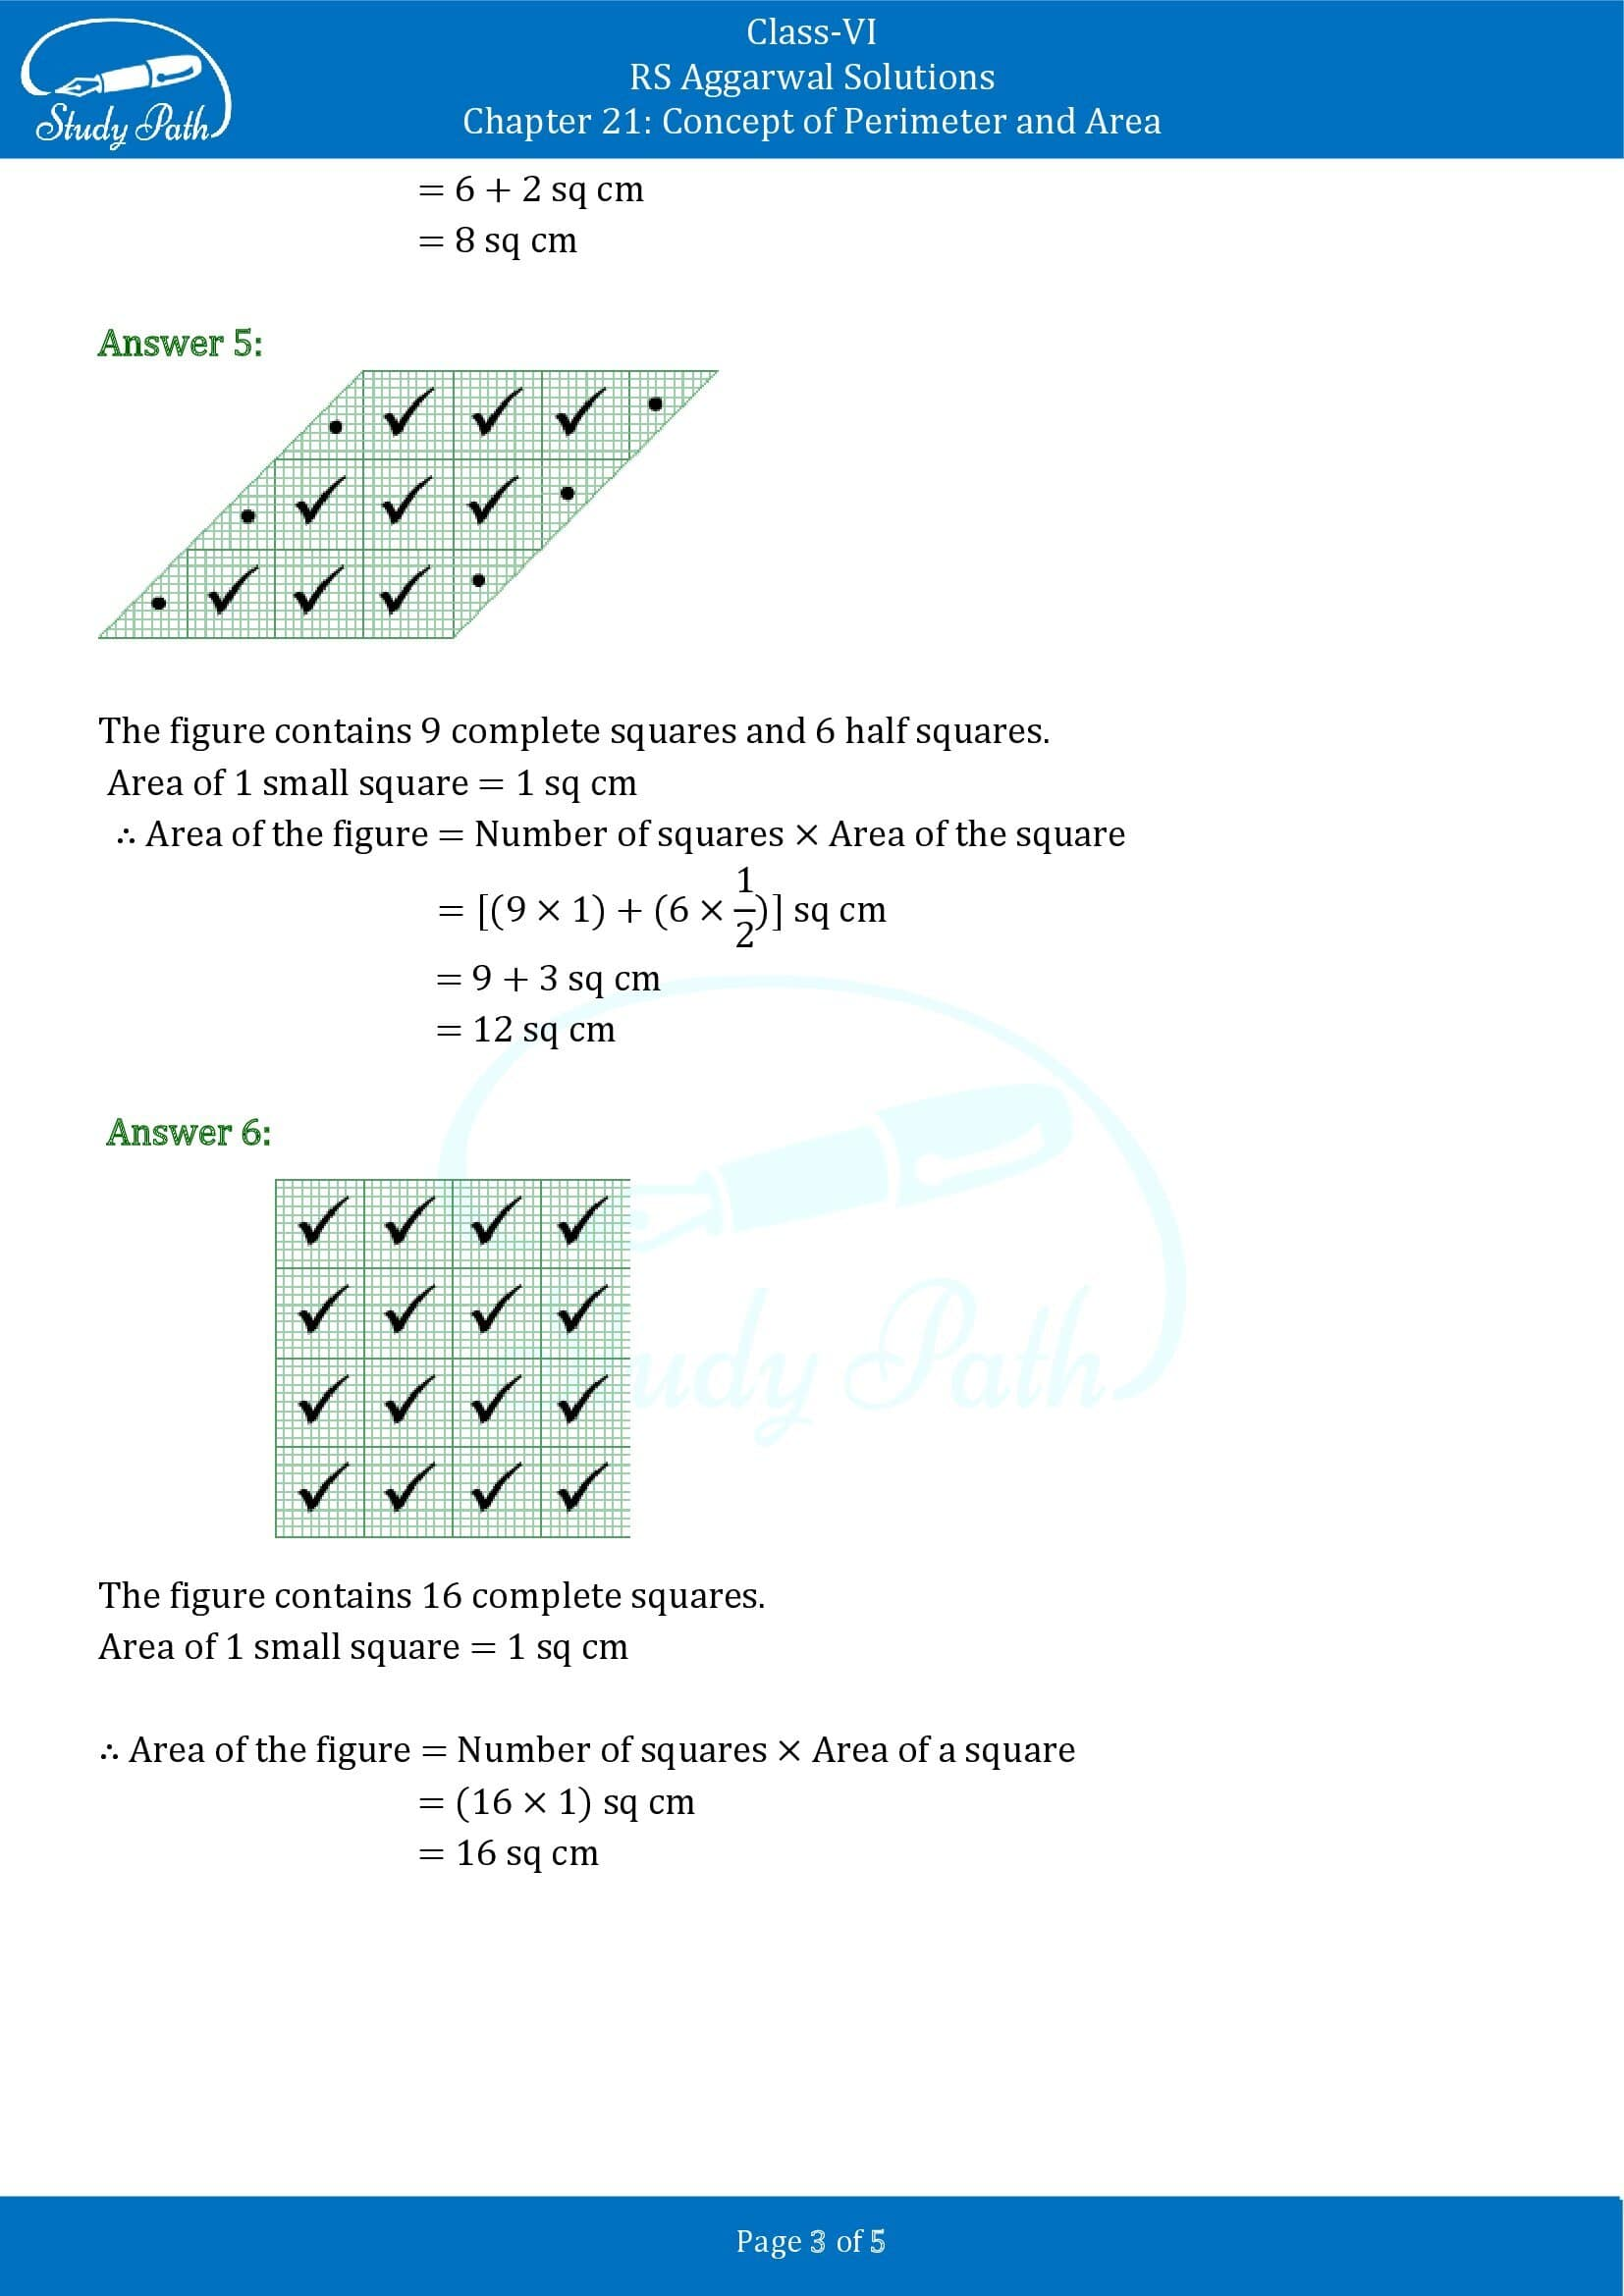 RS Aggarwal Solutions Class 6 Chapter 21 Concept of Perimeter and Area Exercise 21C 00003